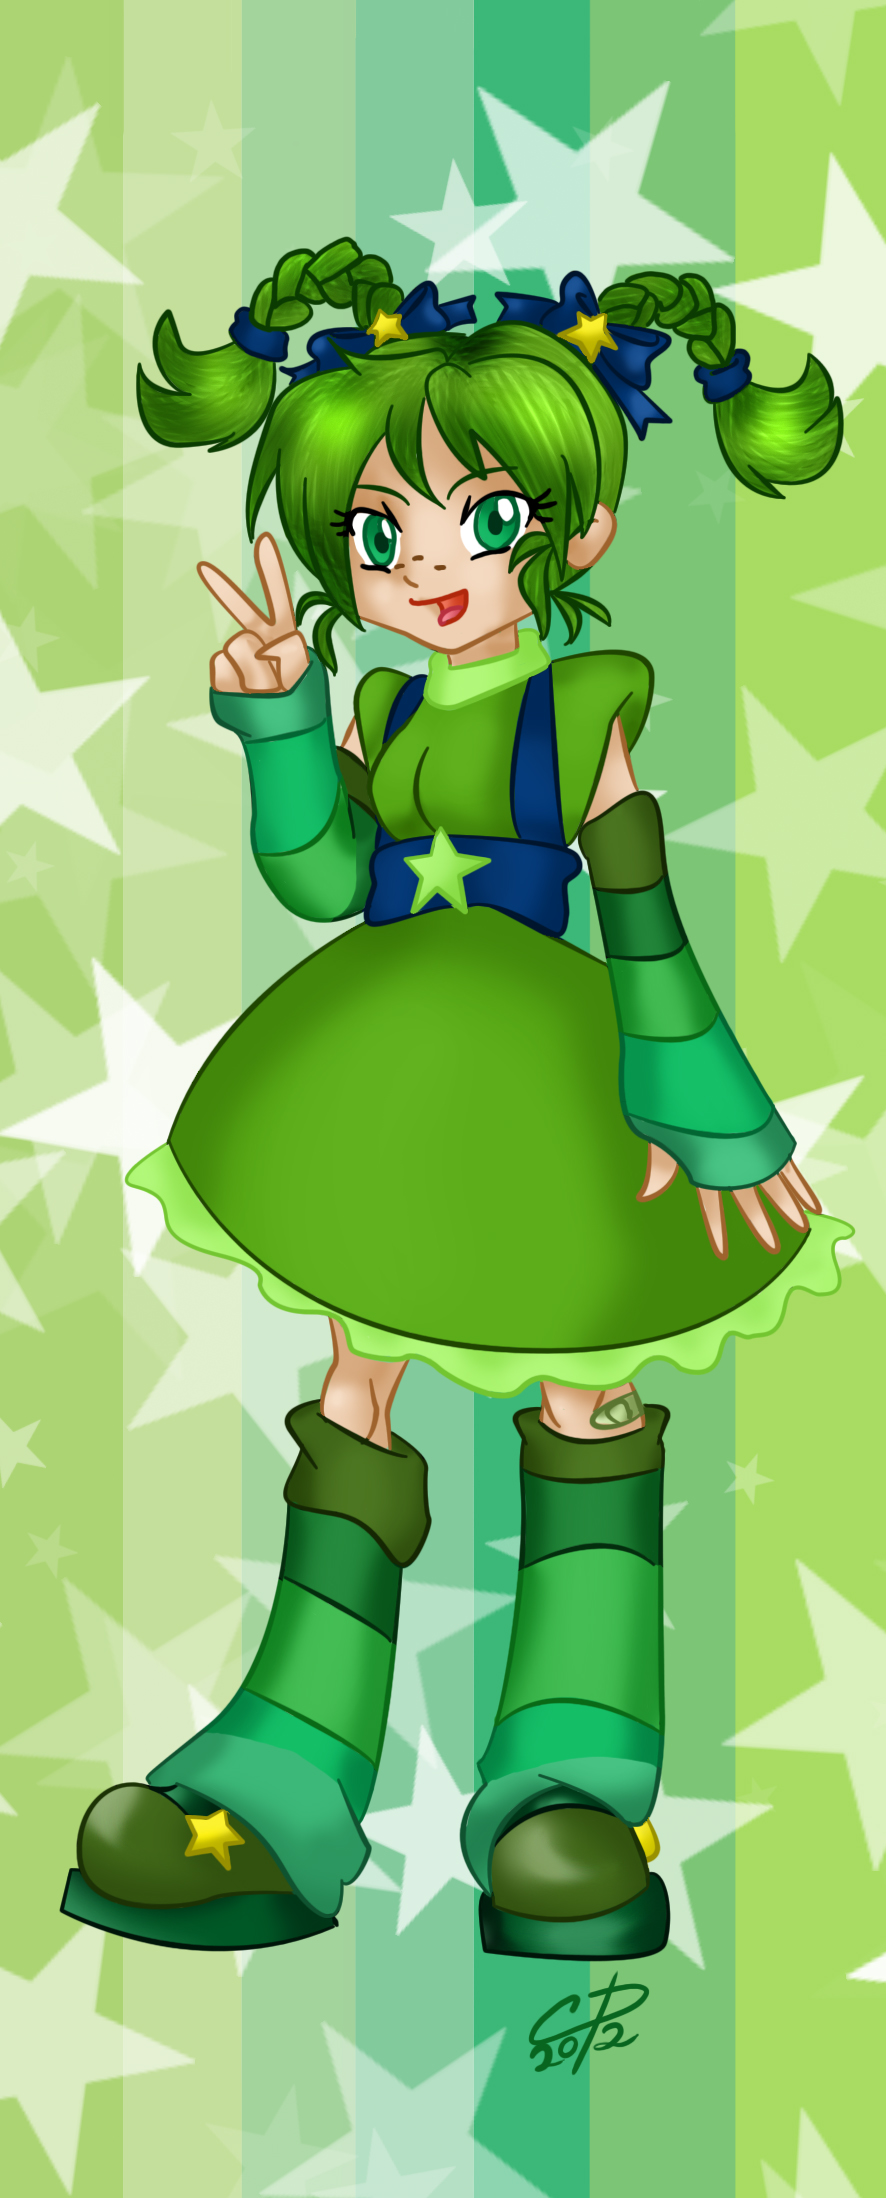 Patty O' Green bookmark design by Hotaru-oz